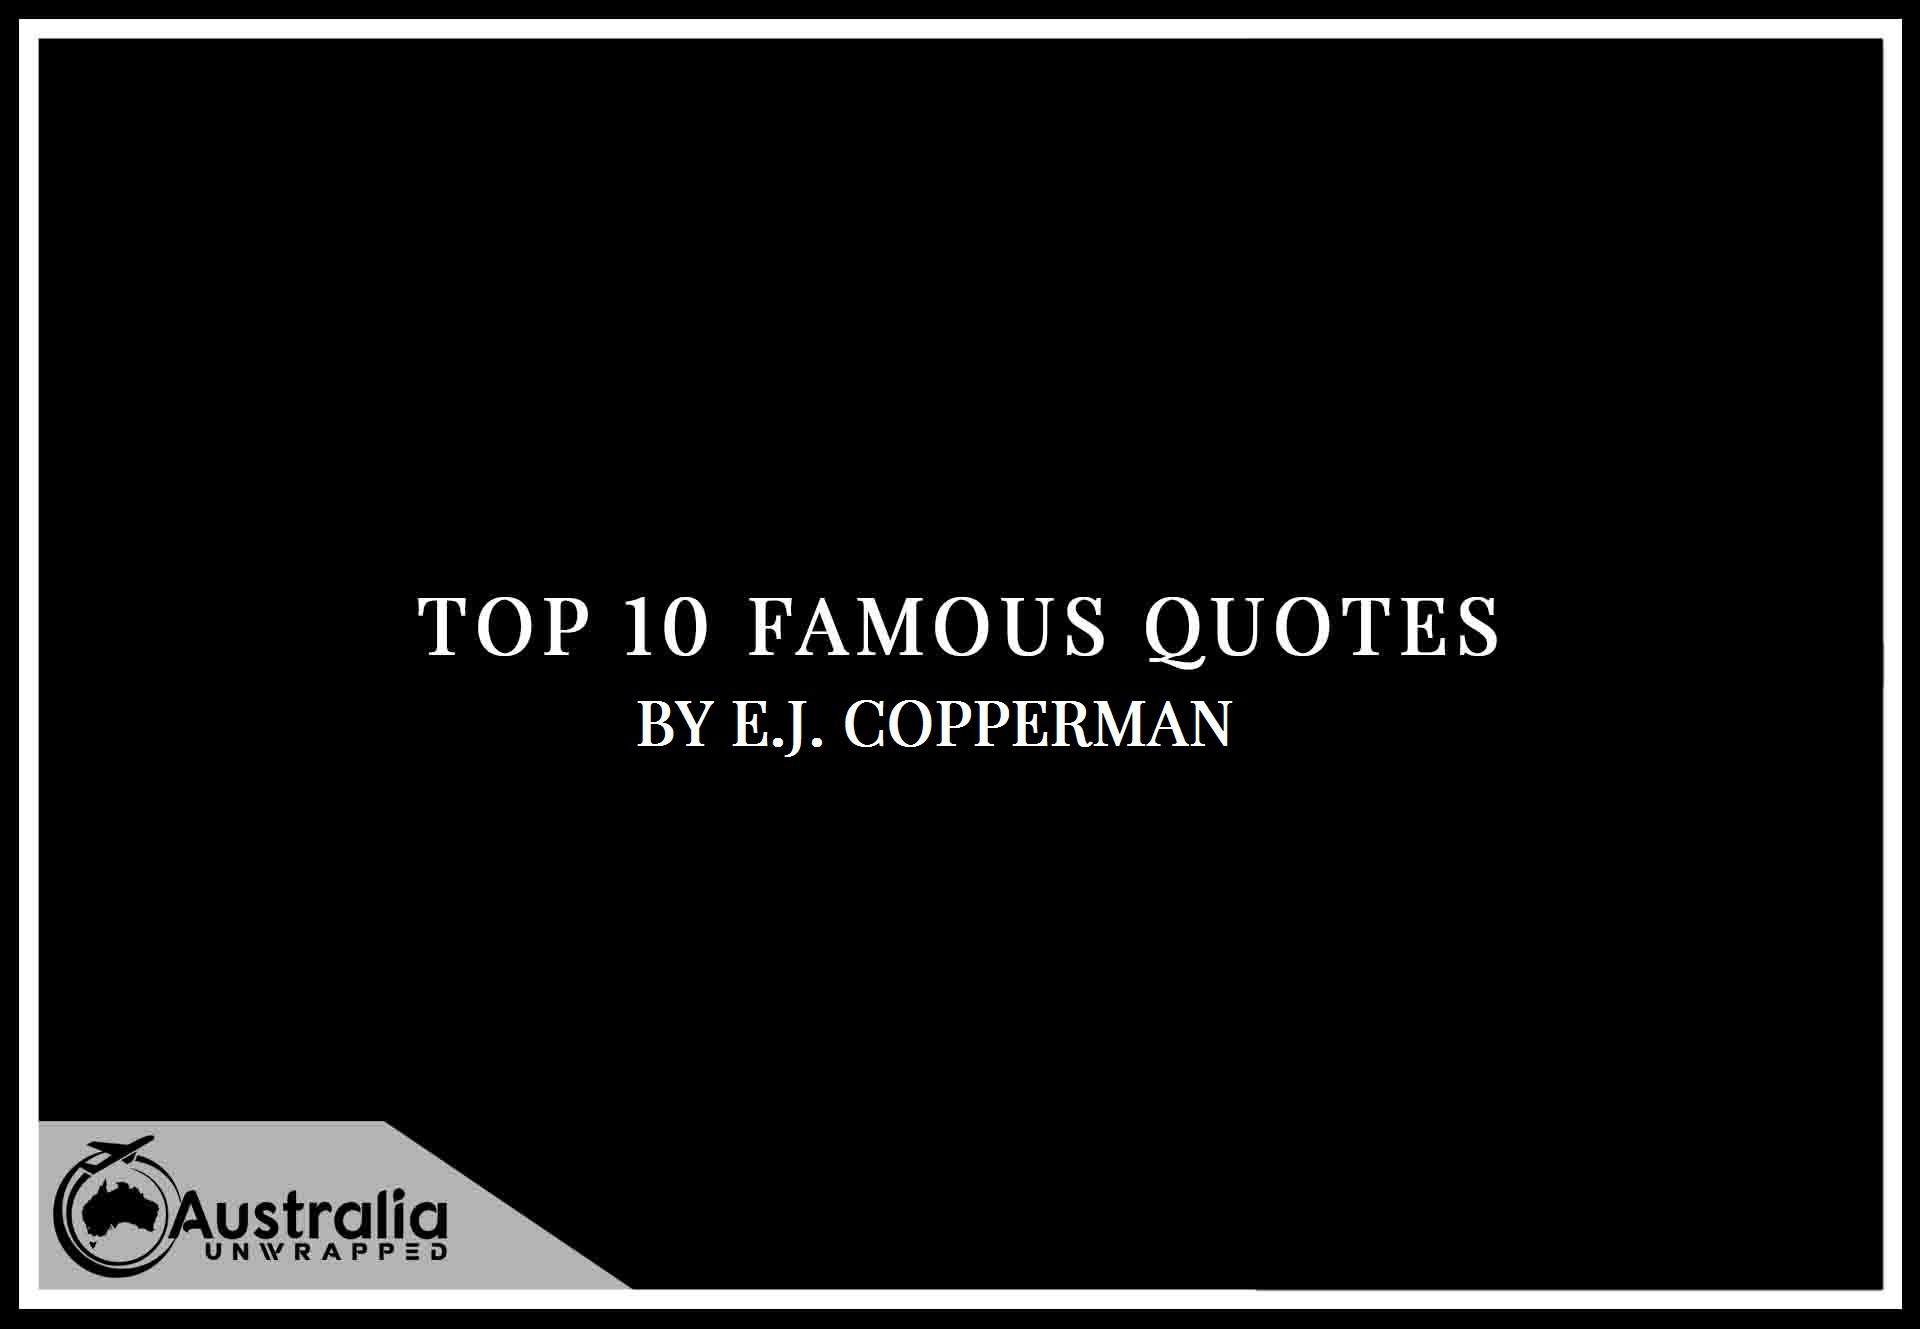 E.J. Copperman's Top 10 Popular and Famous Quotes